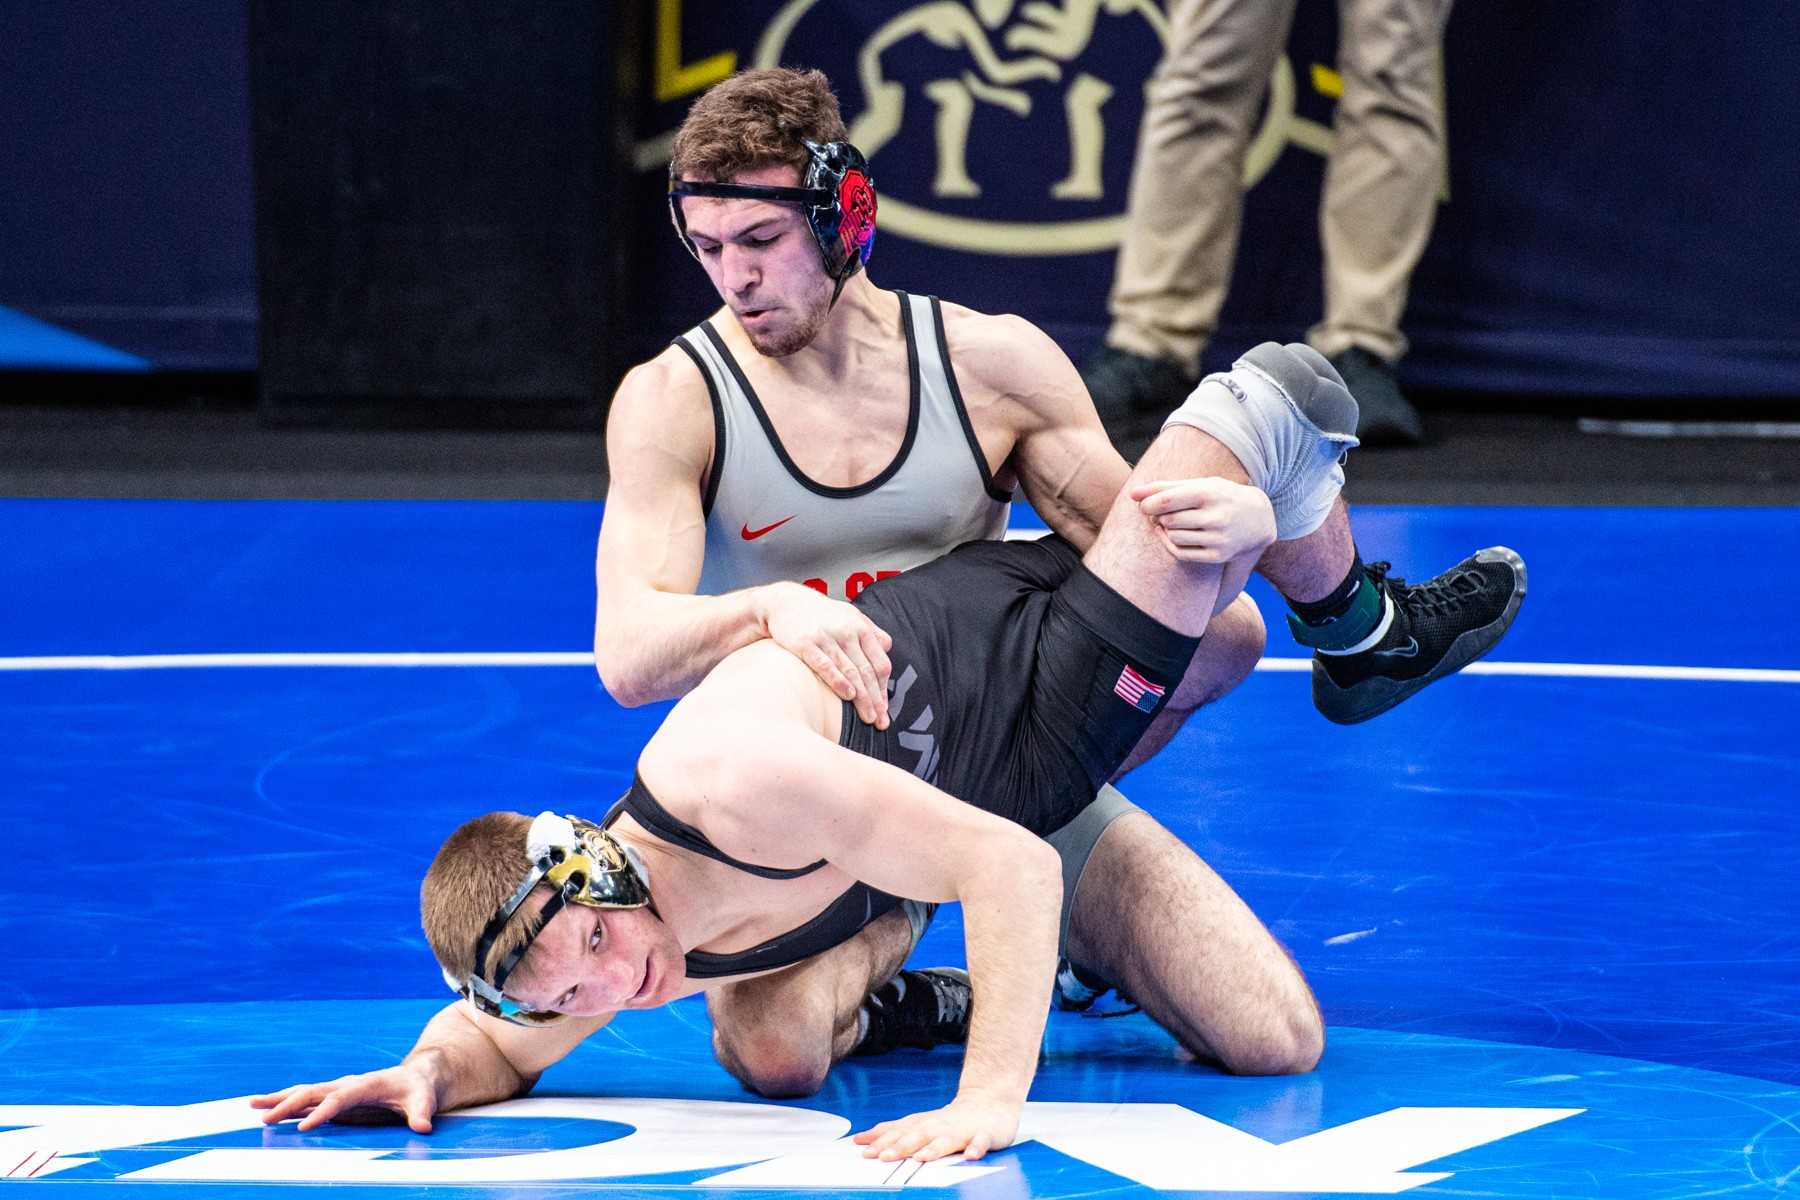 Ohio State wrestler Dylan D'Emilio at the NCAA Division I championships in St. Louis. (Photo courtesy Ohio State Athletics)